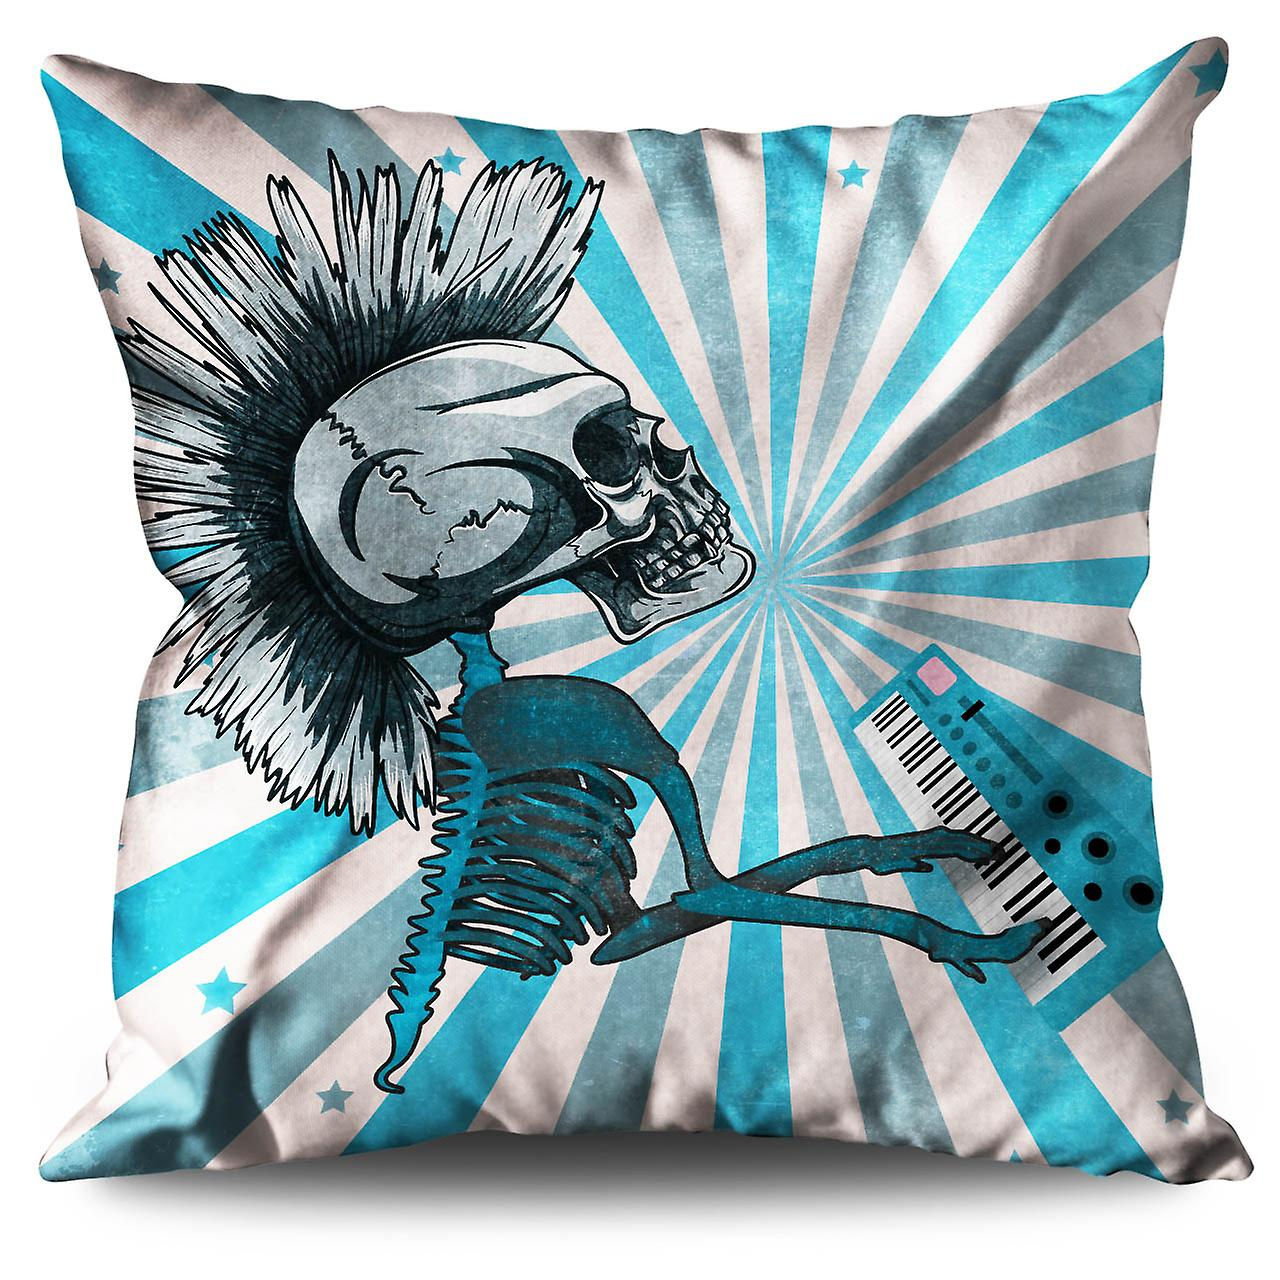 Cushion Music Funk 30cm Skeleton Linen XWellcoda rthsdCxQ